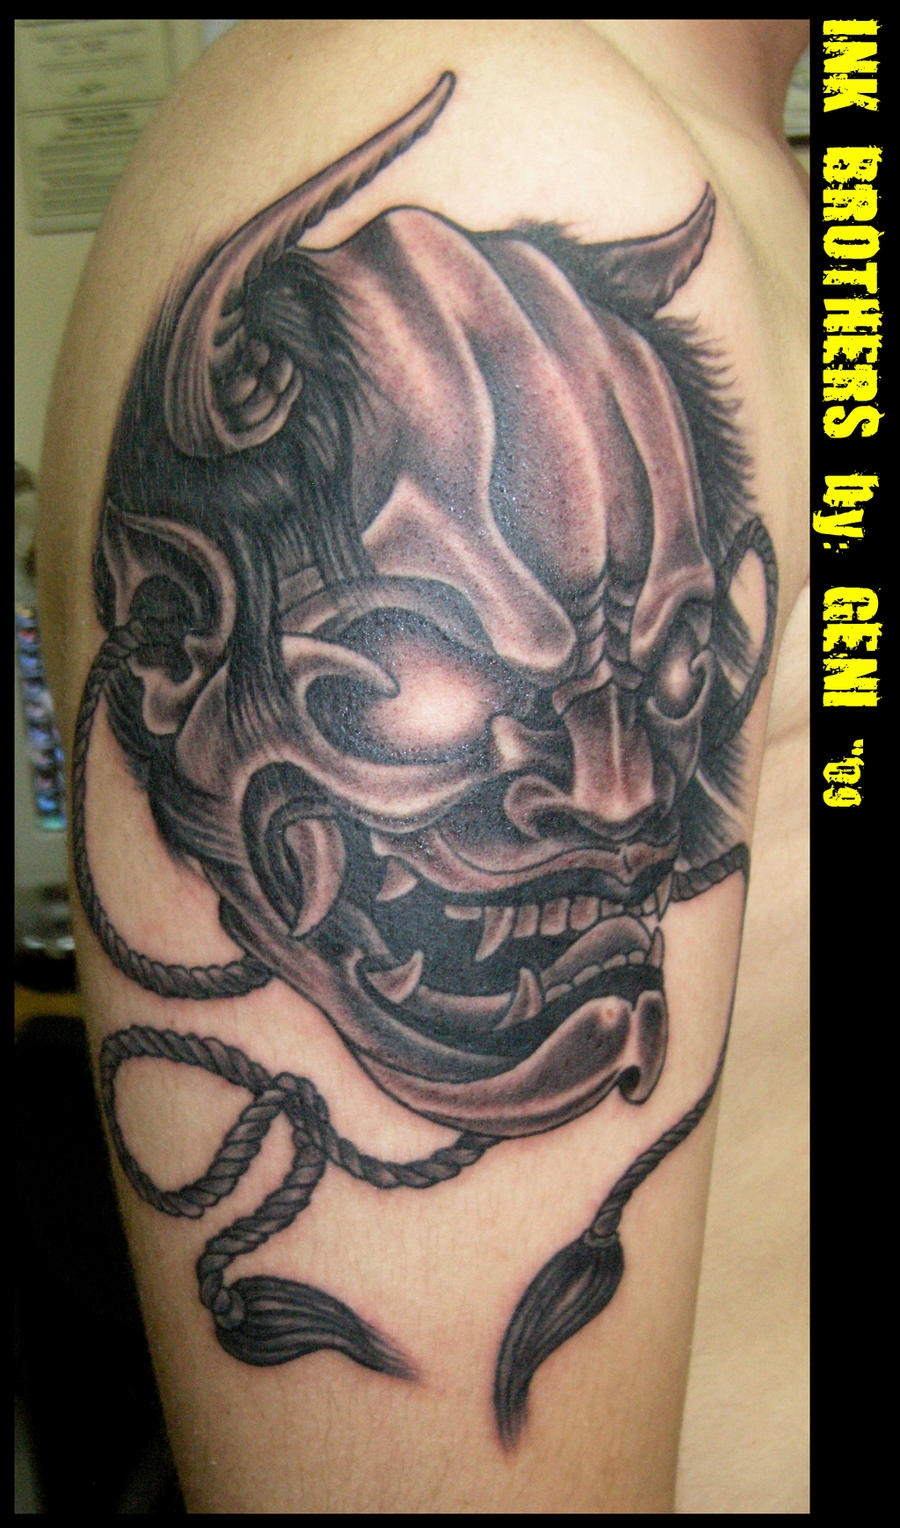 Oni Mask Tattoo: Oni Mask 4 By InkBrothersBG On DeviantArt